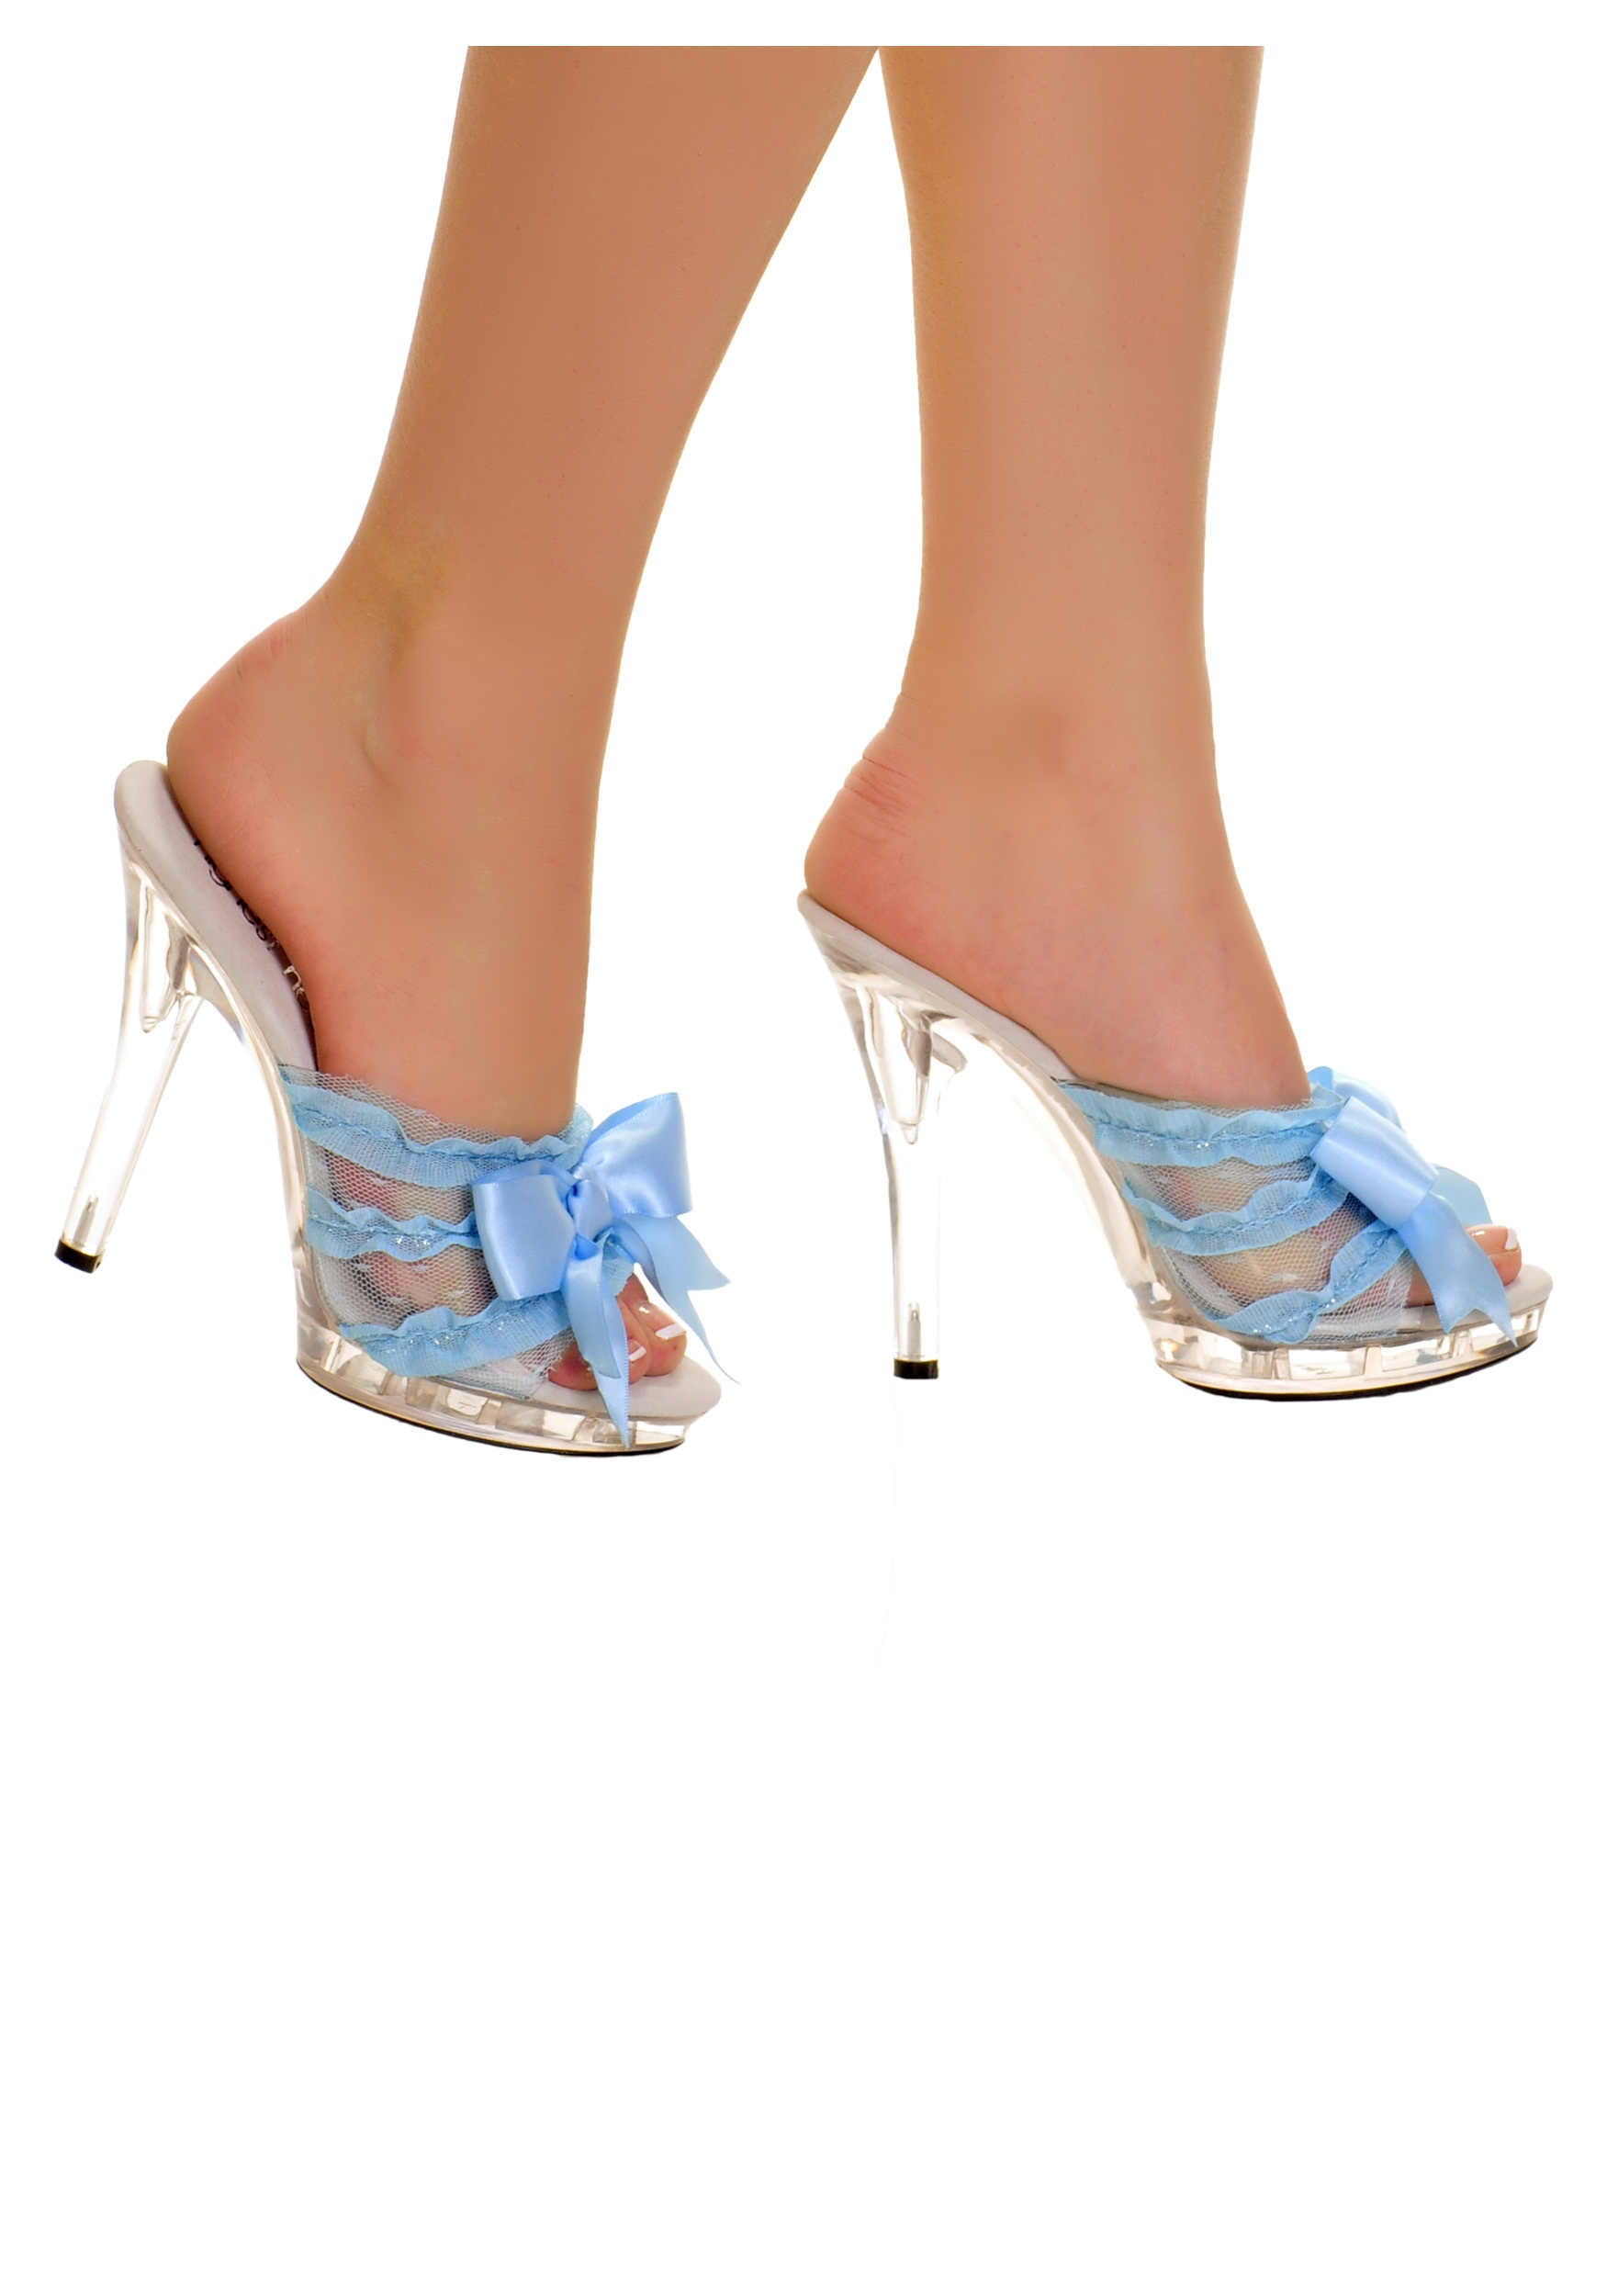 Clear Slip In Peep Toe Heels w/ Blue Ribbon